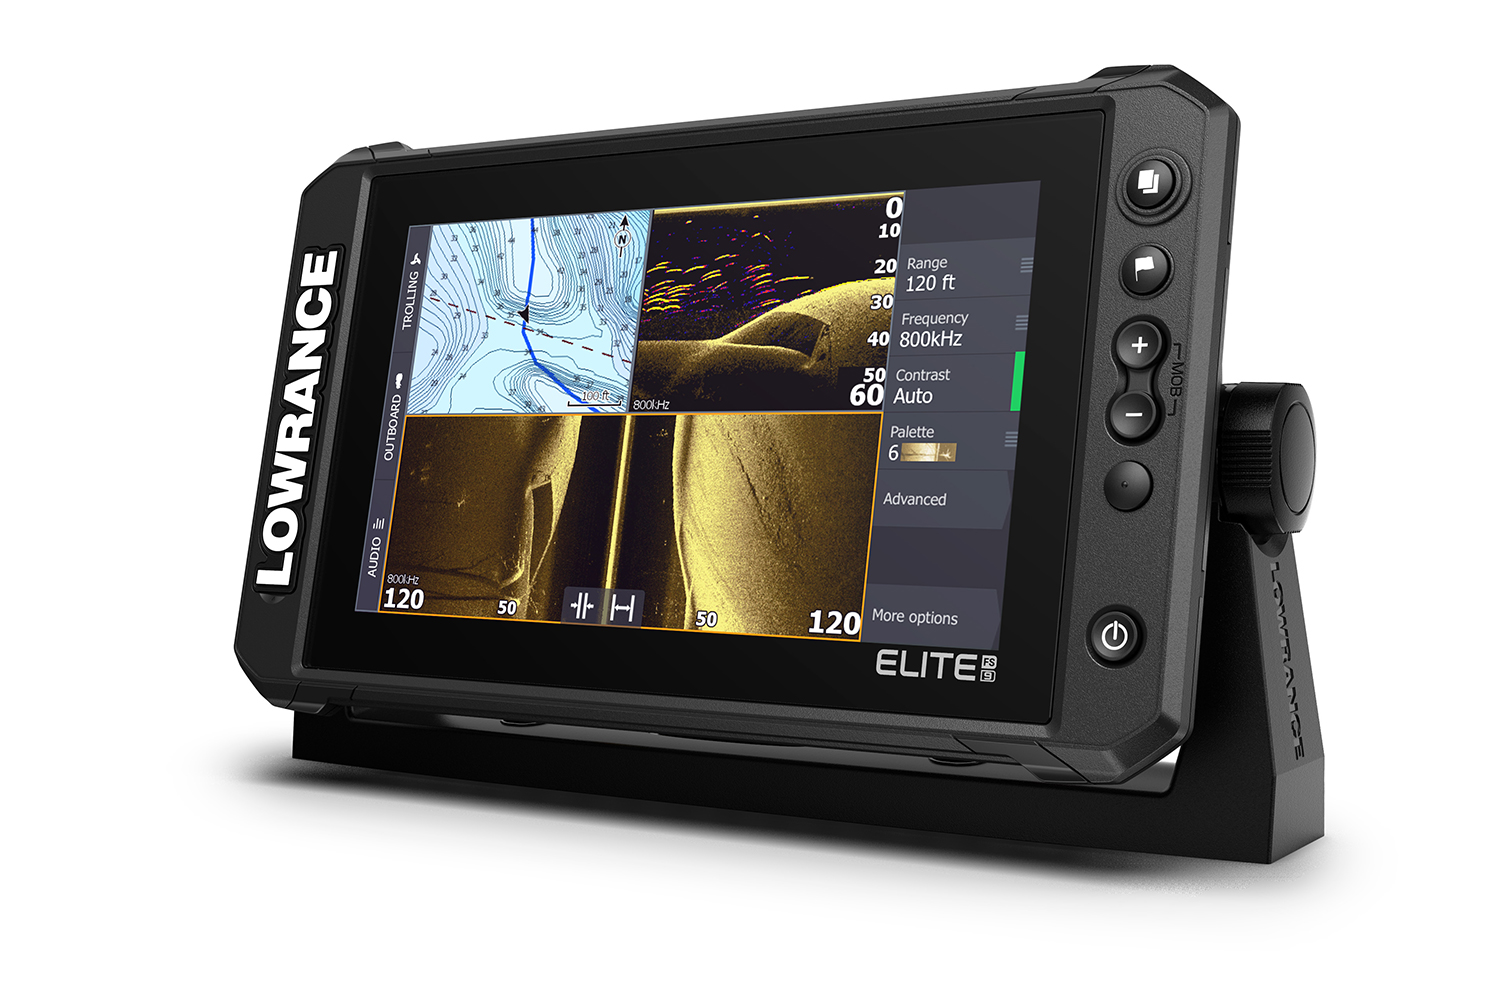 Lowrance announced the launch the most powerful Elite series fishfinder/chartplotter available – the new, Elite FS